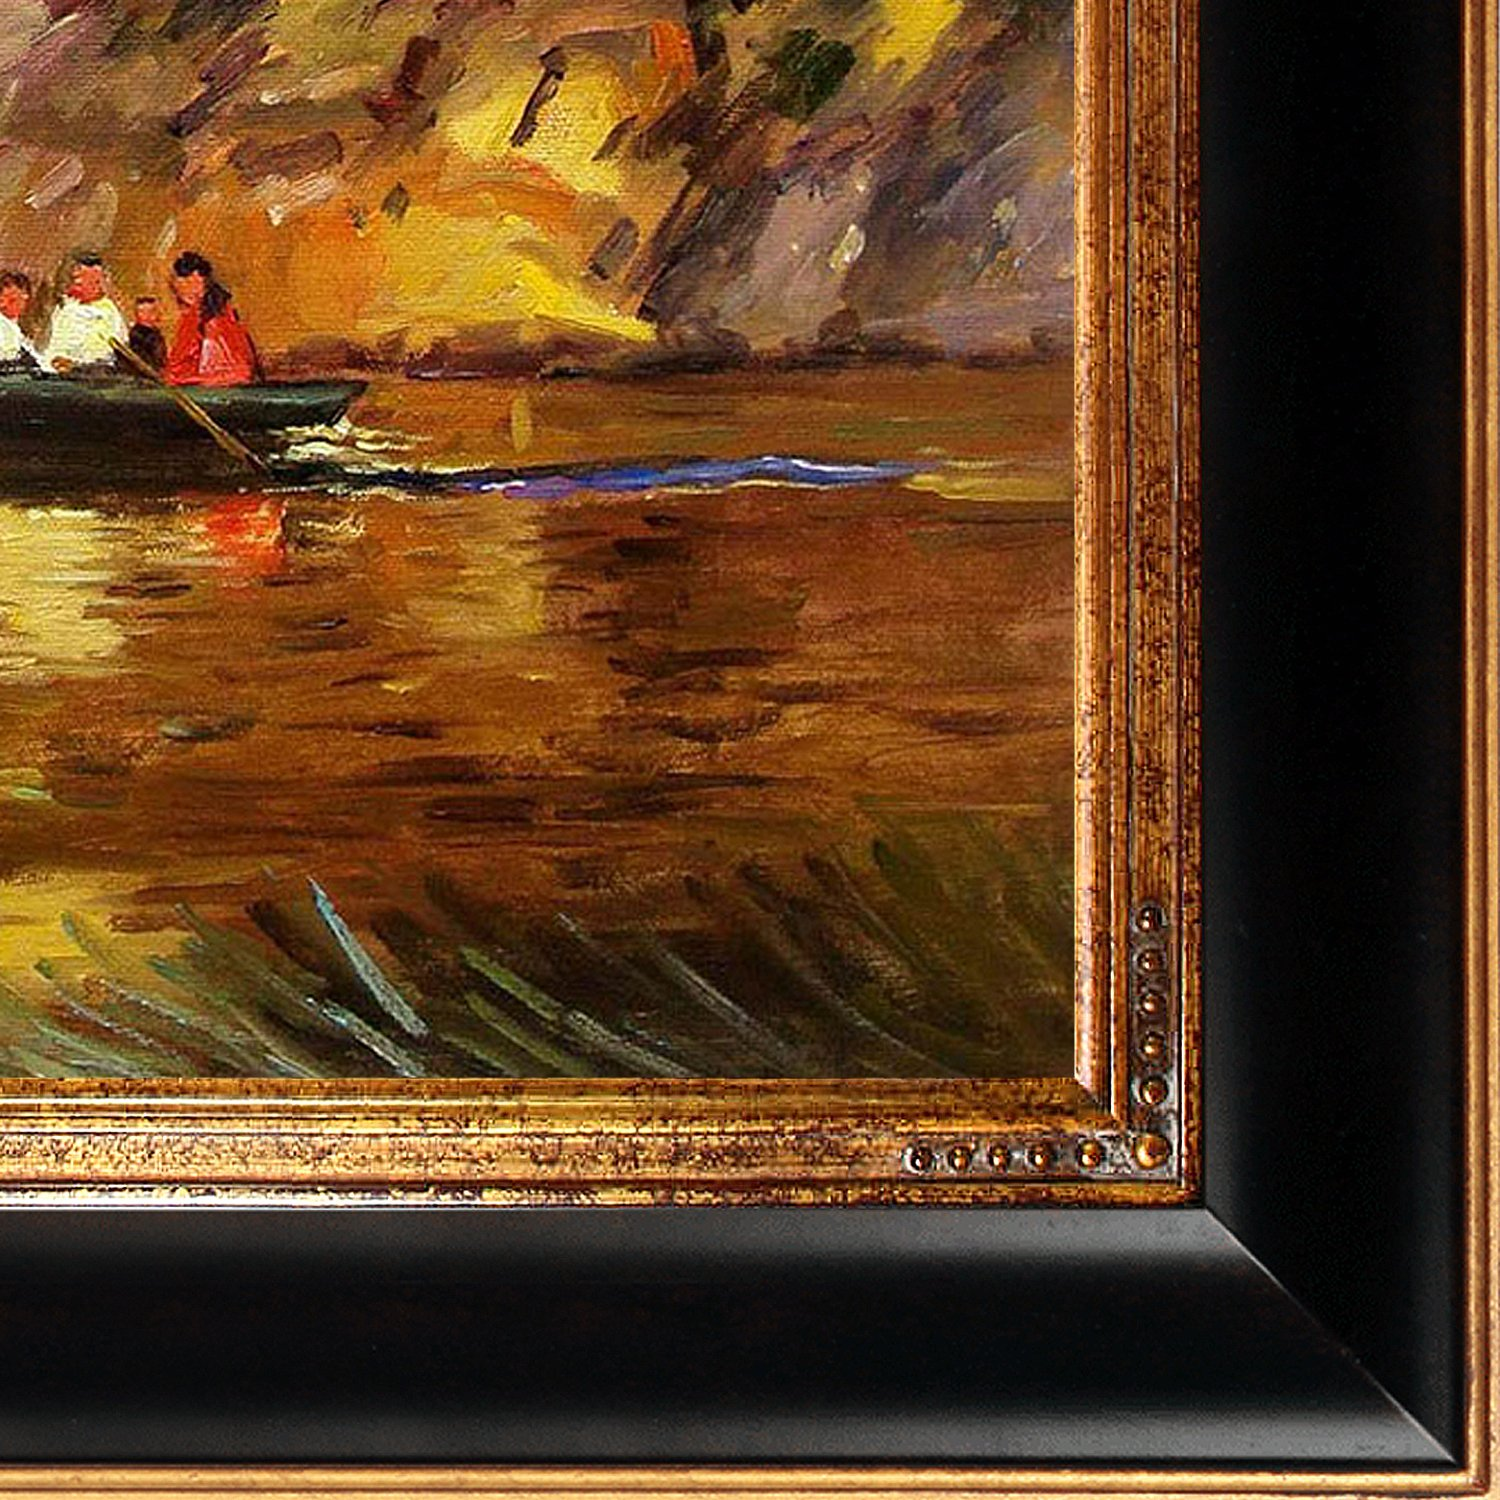 overstockArt Boating in Central Park Framed Oil Reproduction of an Original Painting by Edward Henry Potthast